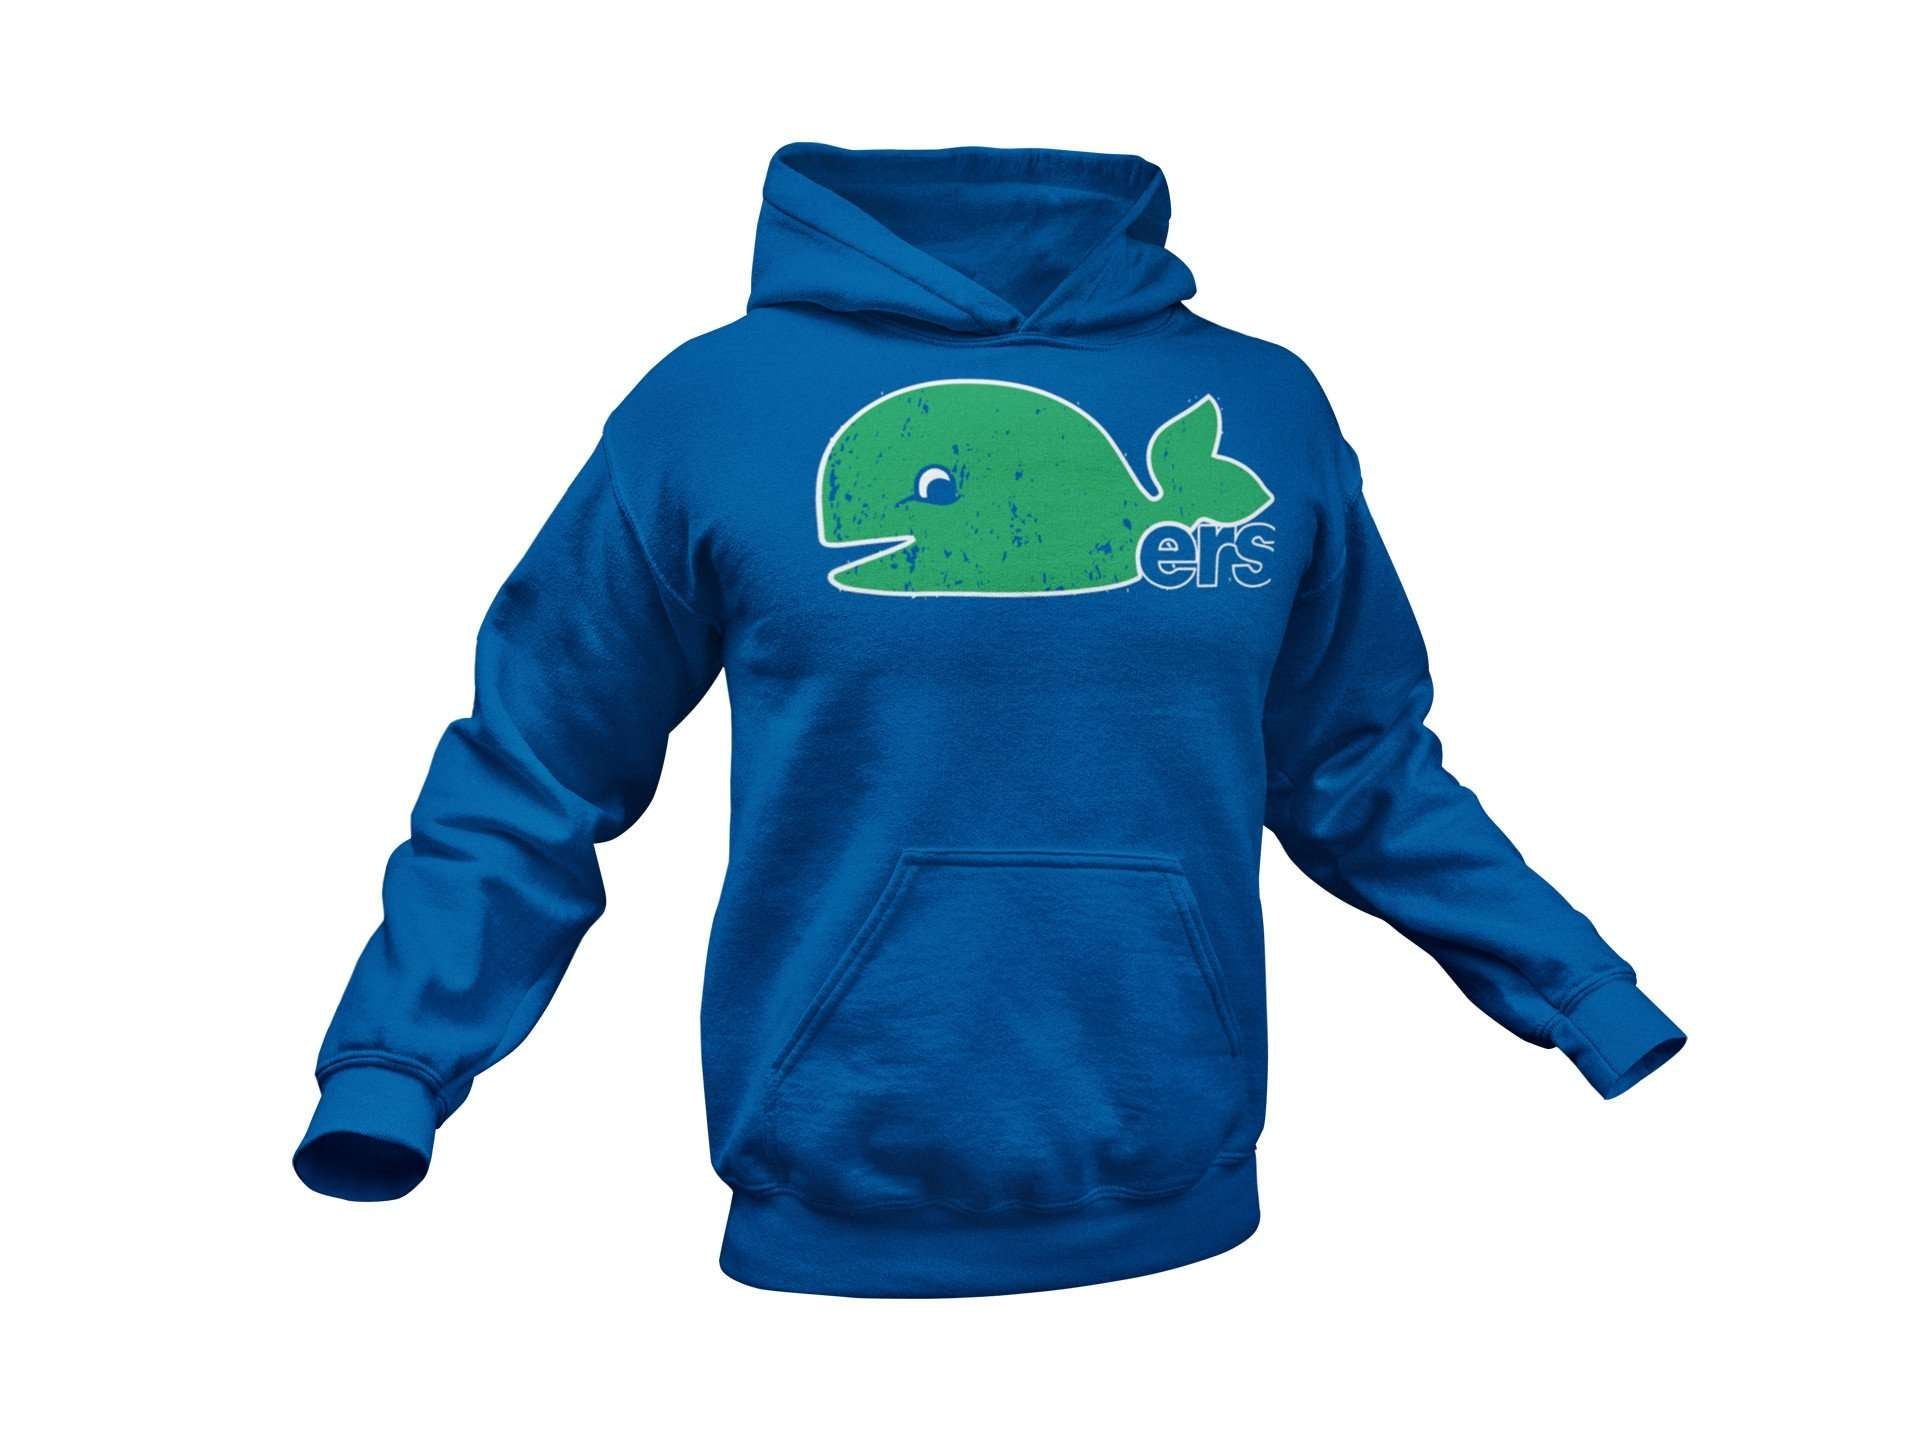 Hartford Whalers Inspired Pullover Hoodie